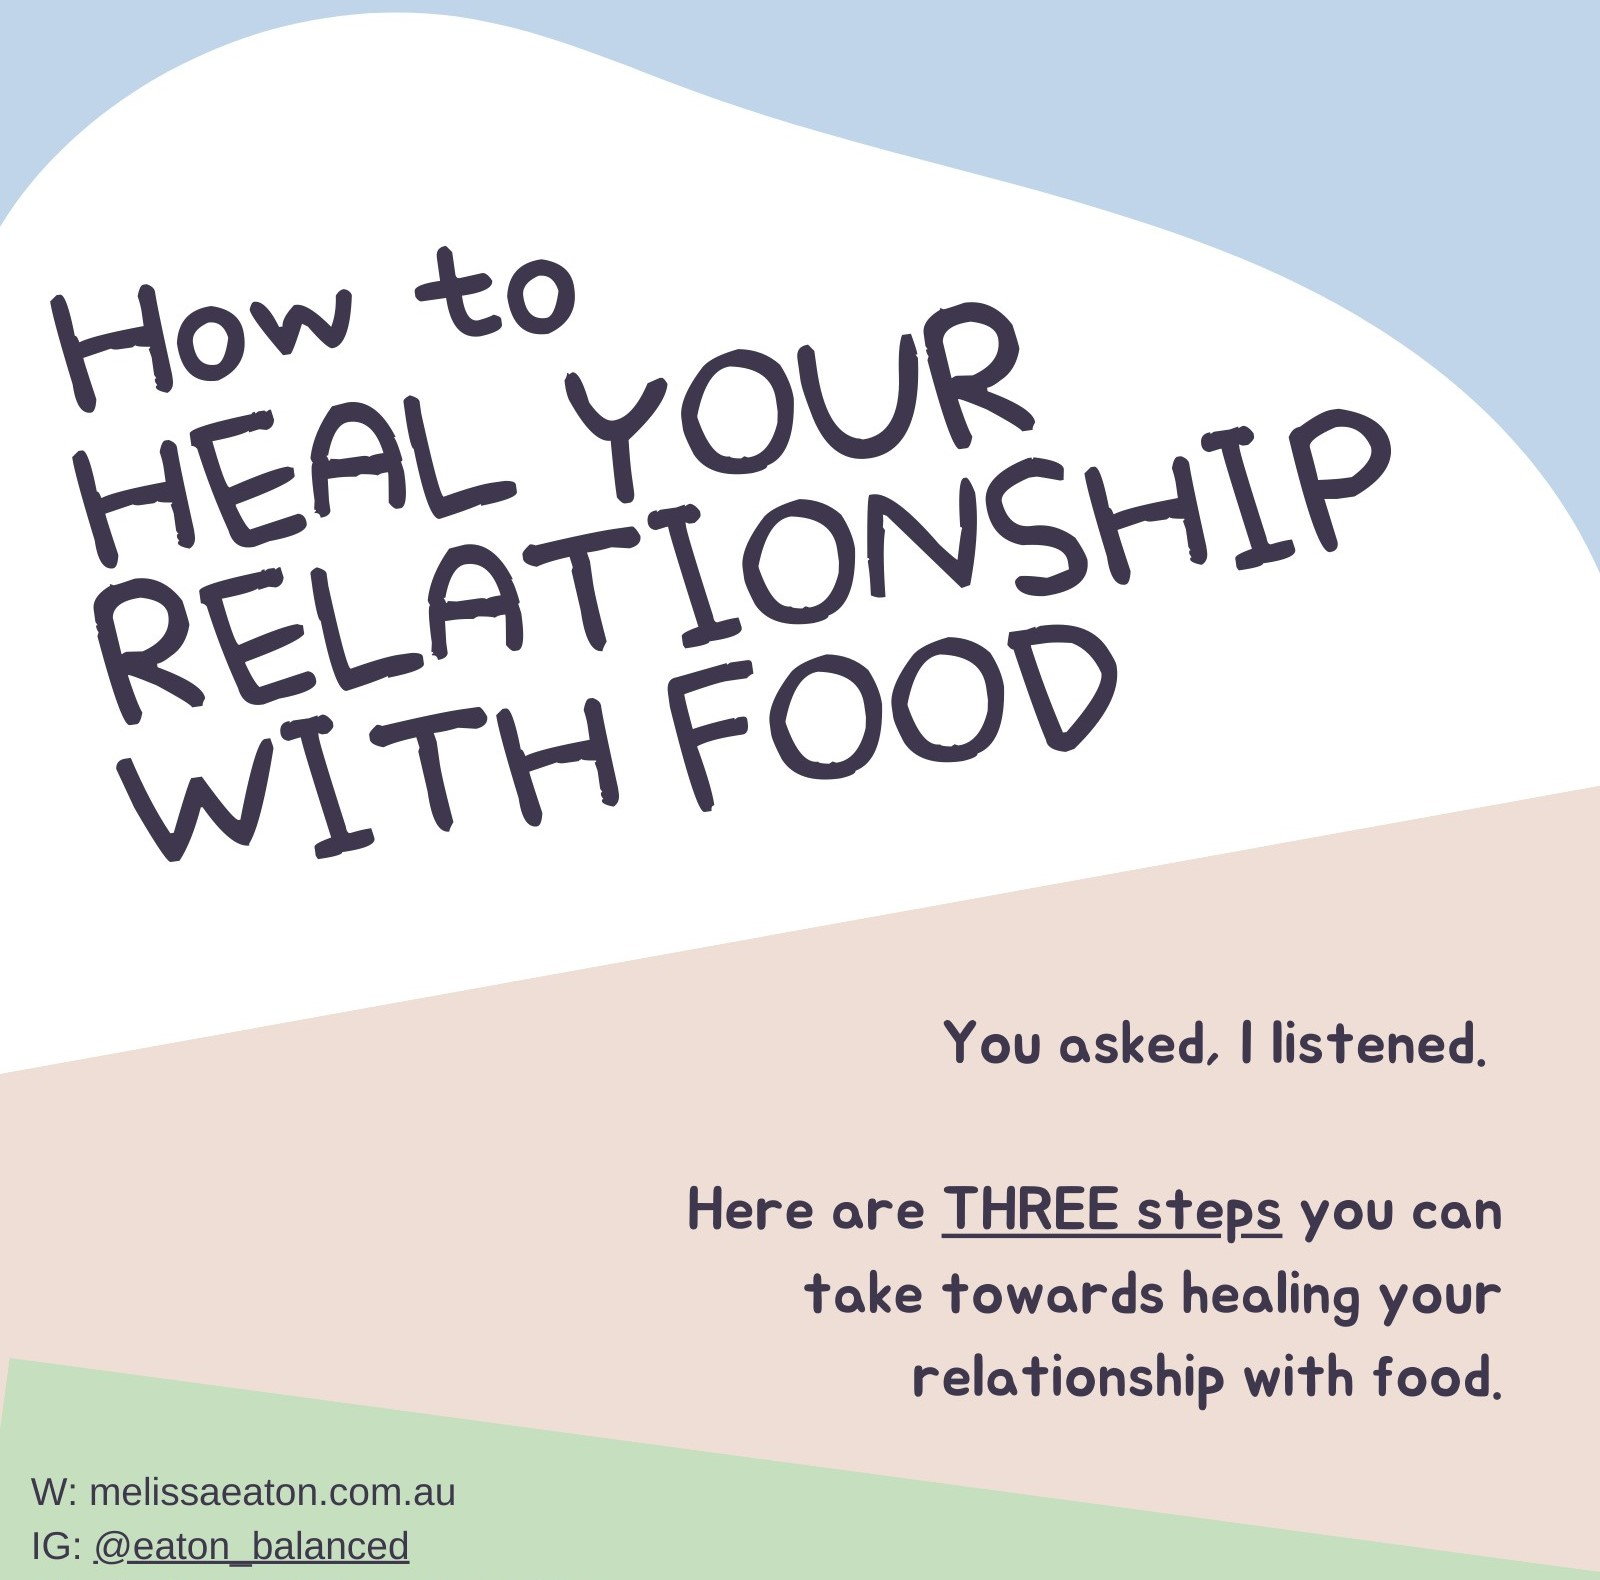 How-to-heal-your-relationship-with-food